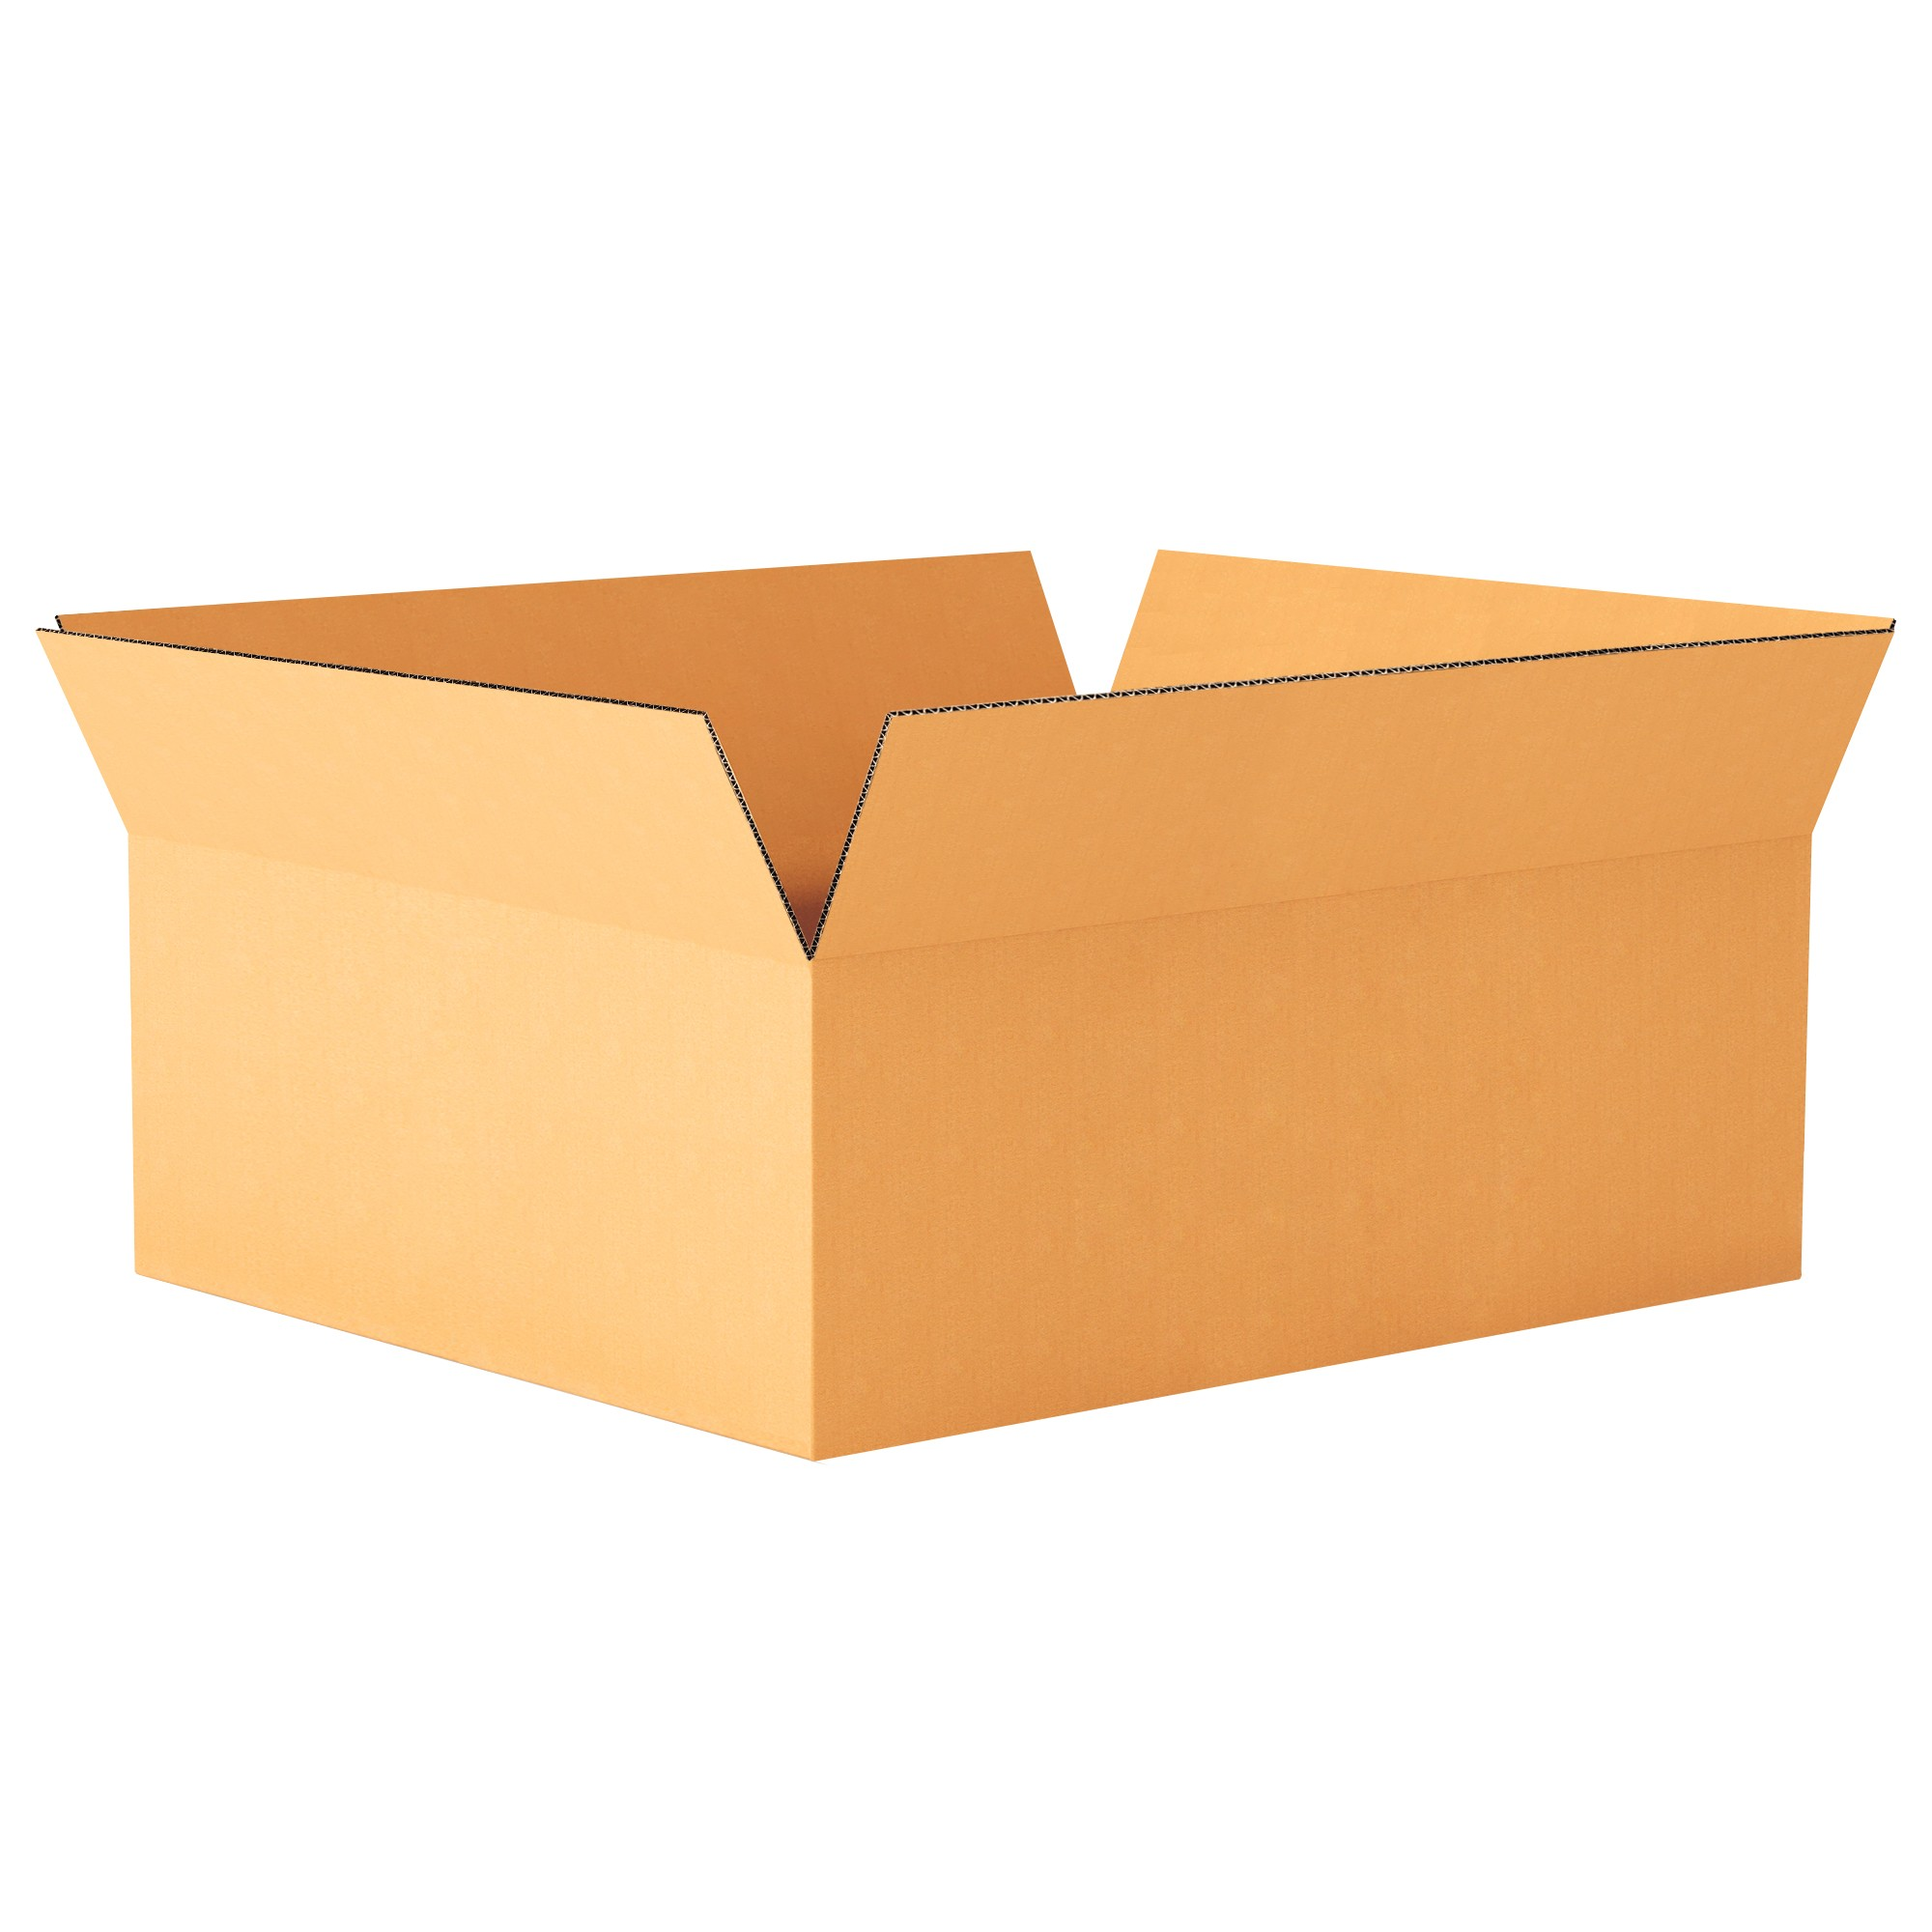 """TOTALPACK® 30 x 15 x 15"""" Single Wall Corrugated Boxes 15 Units"""